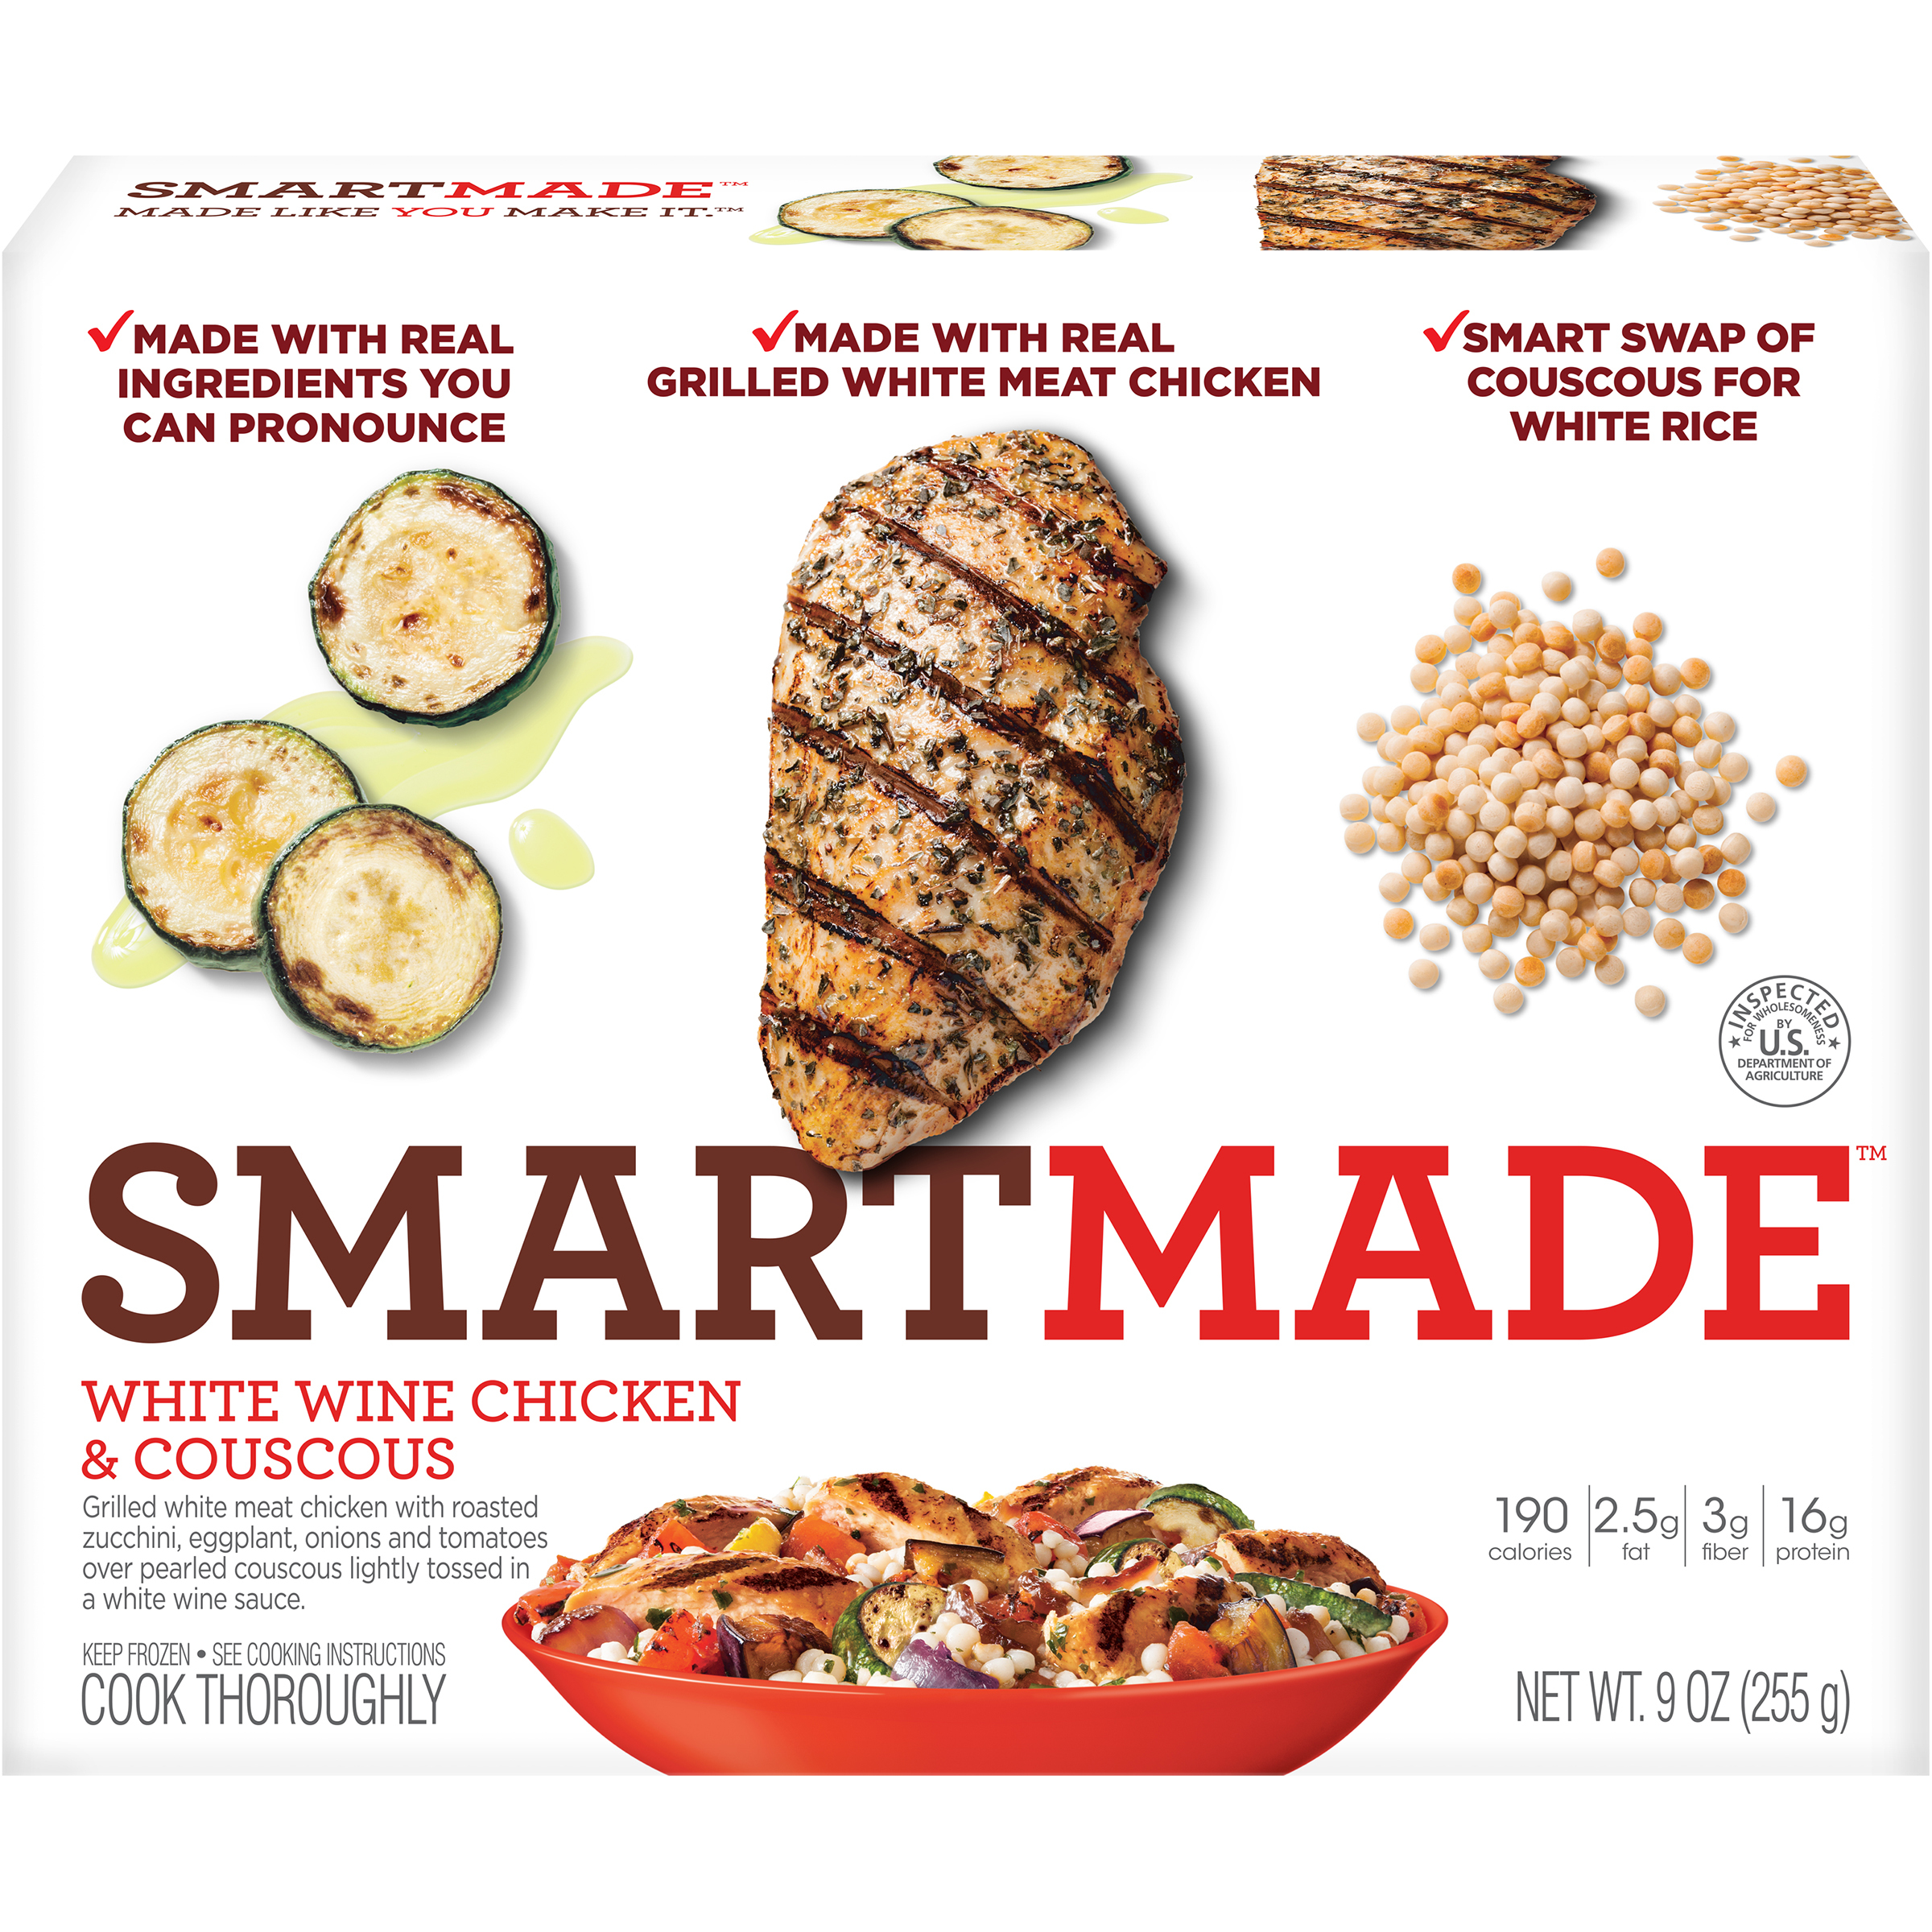 SmartMade White Wine Chicken with Cous Cous, 9 oz. image